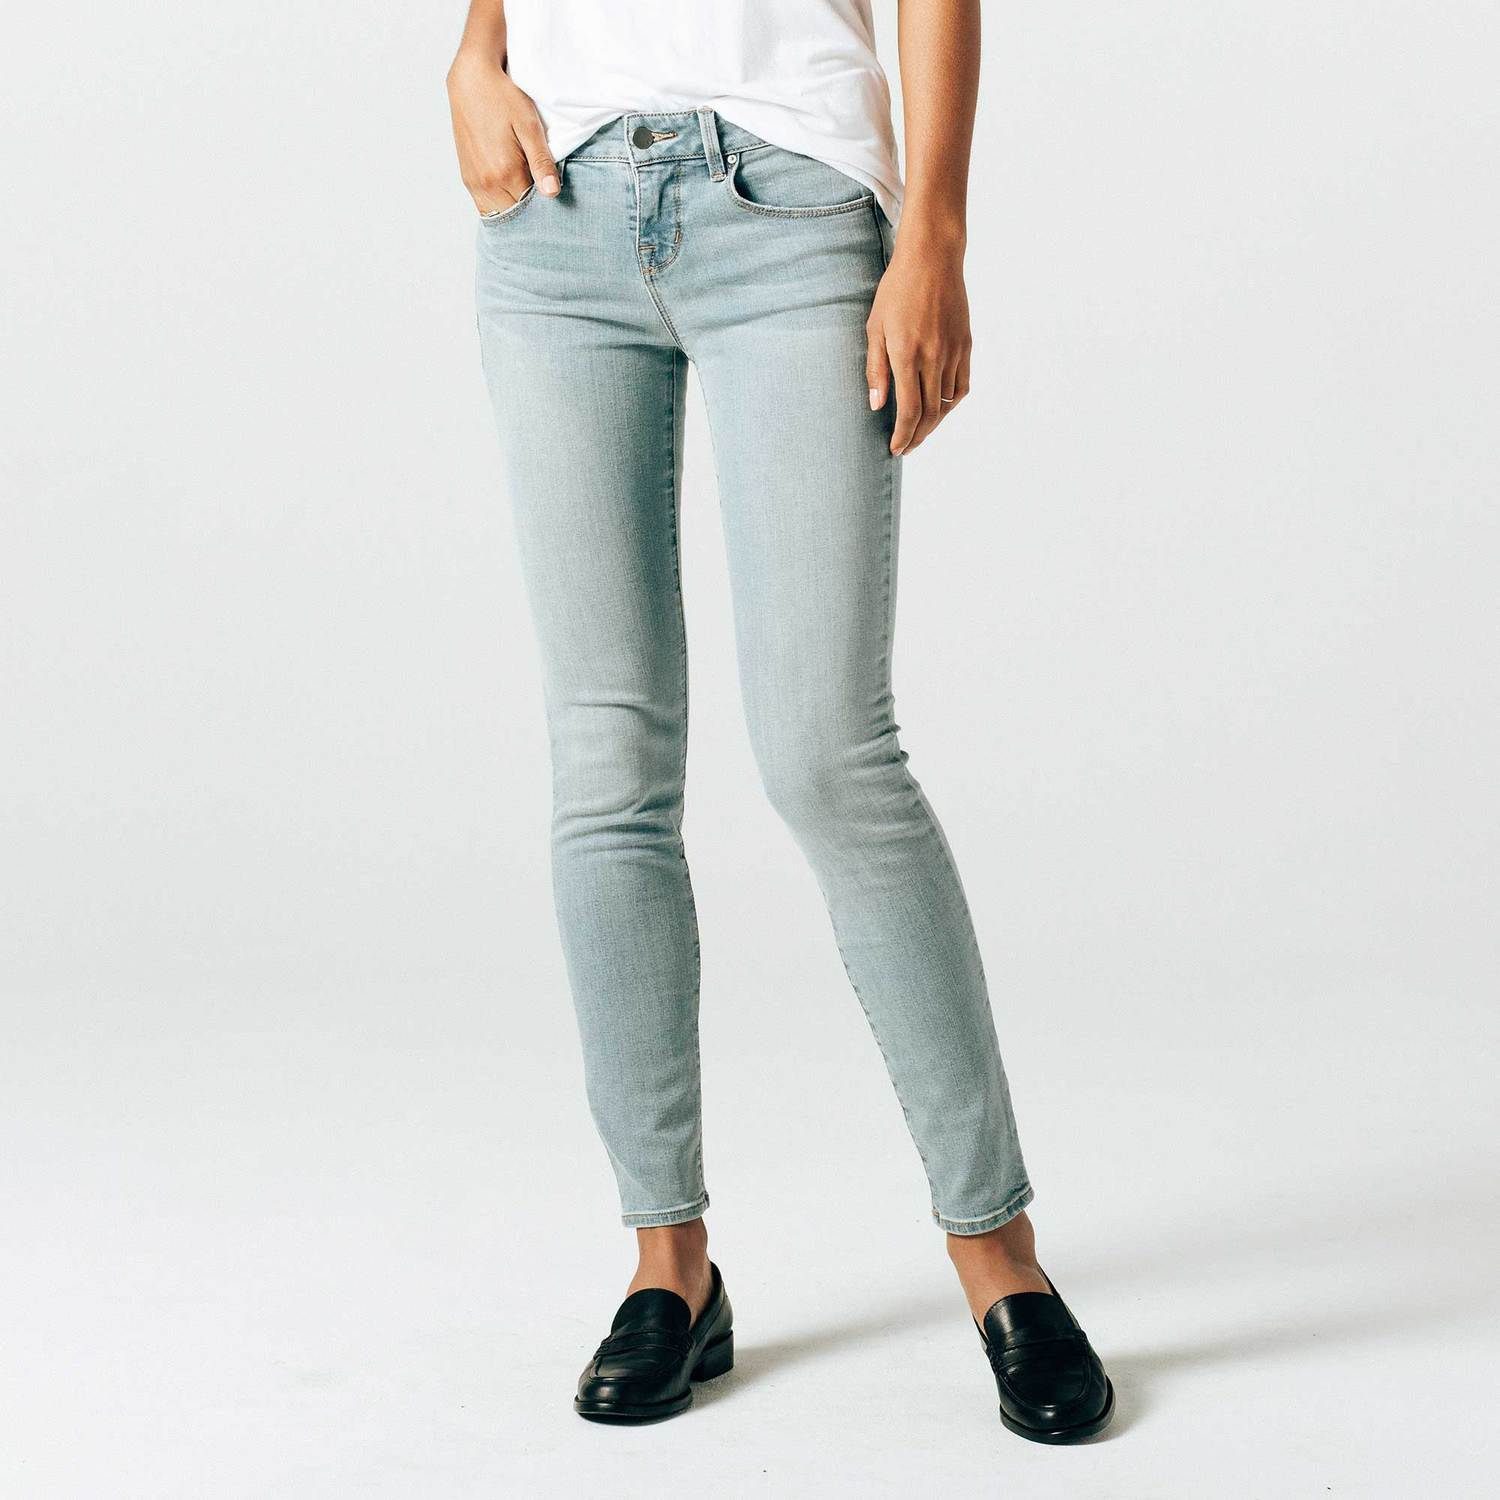 27887dce Womens Mid Rise Skinny Jeans In Light Vintage $47 | DSTLD